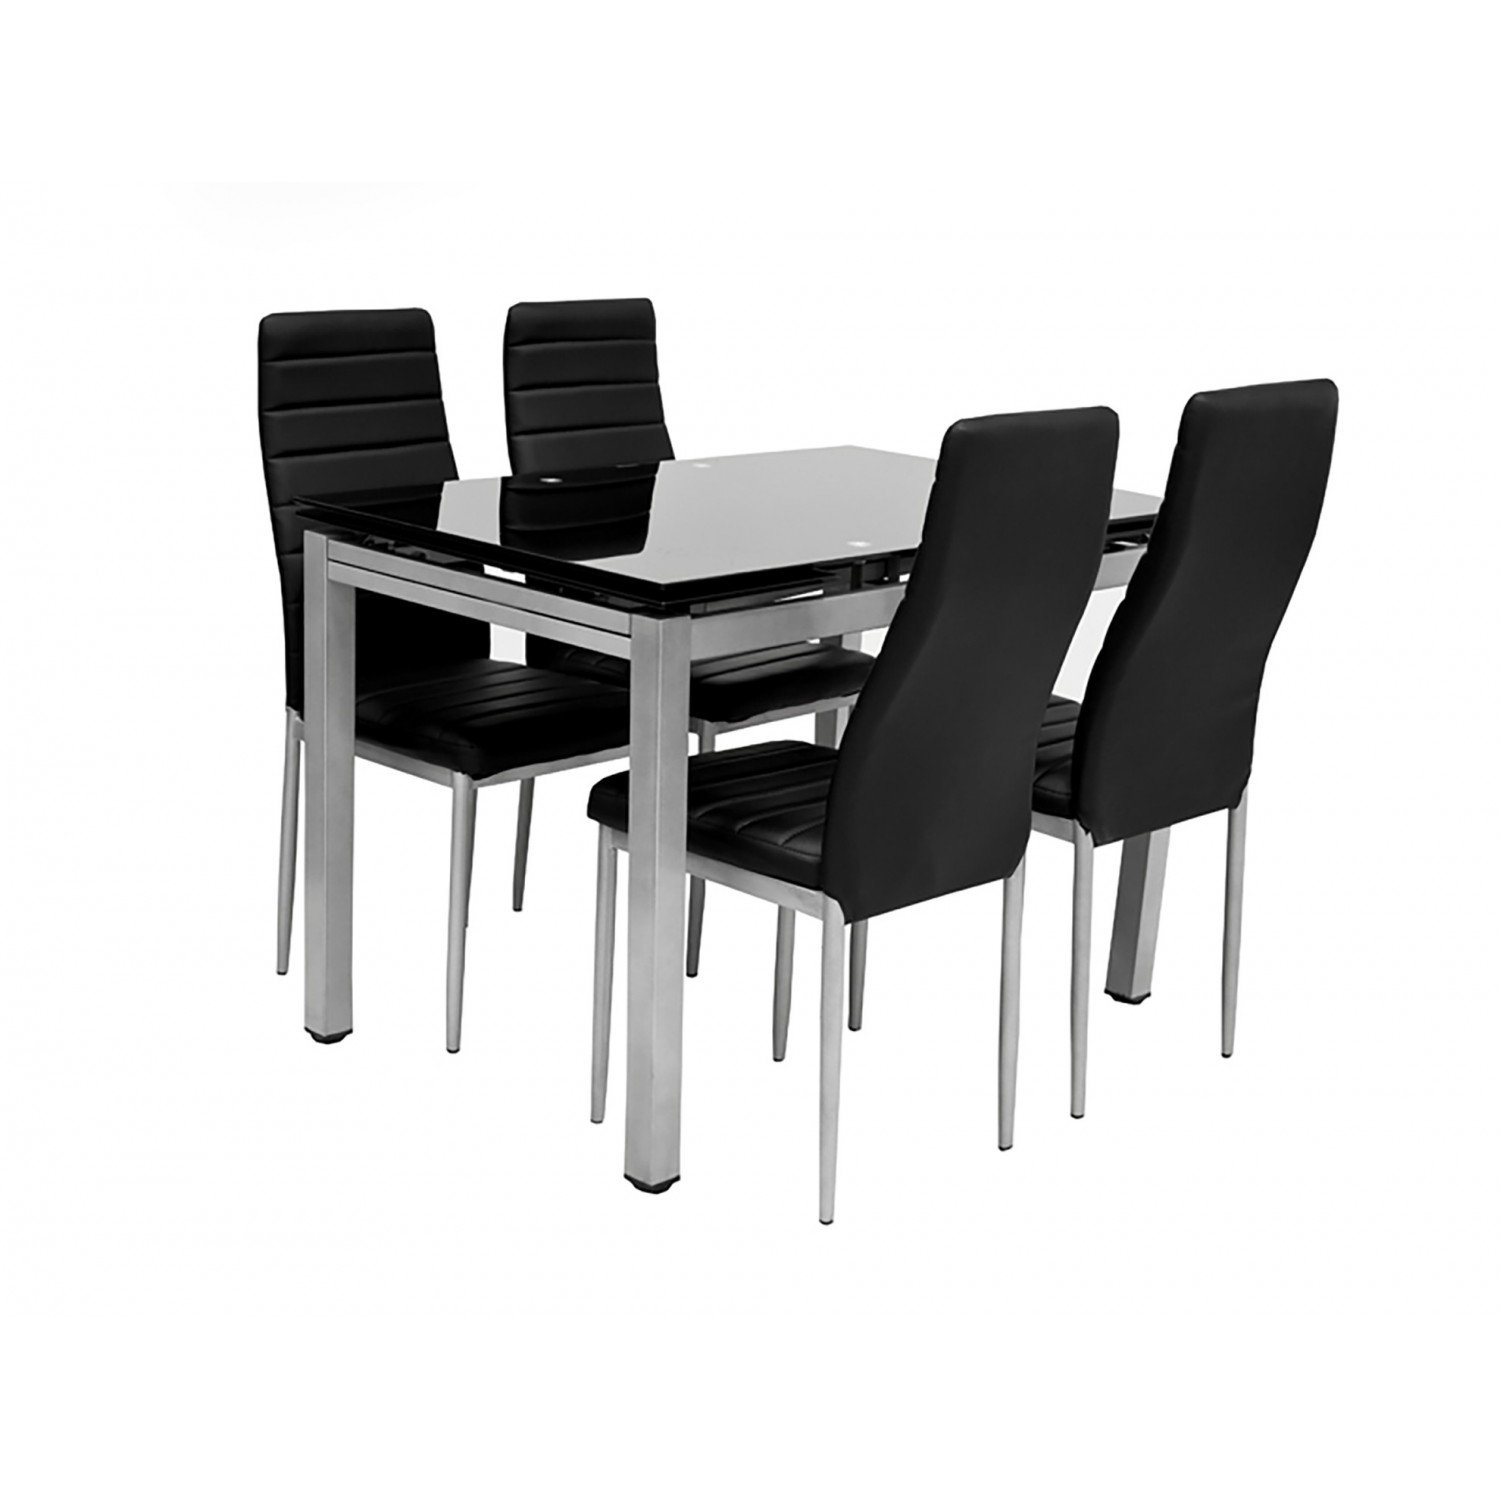 Awesome table et chaises de cuisine noire contemporary for Chaise et table cuisine